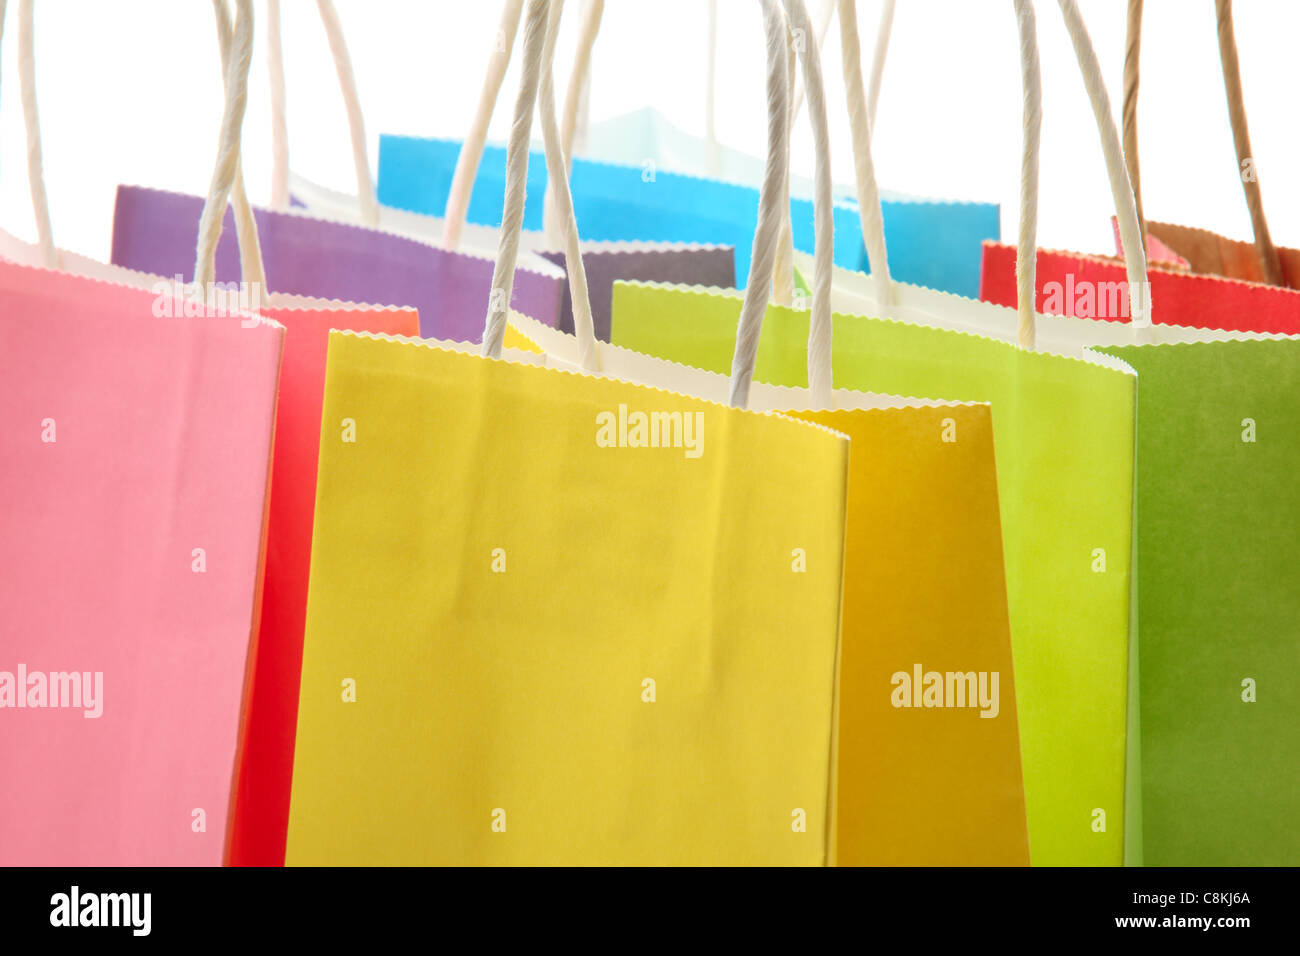 Closeup of colorful shopping bags - Stock Image